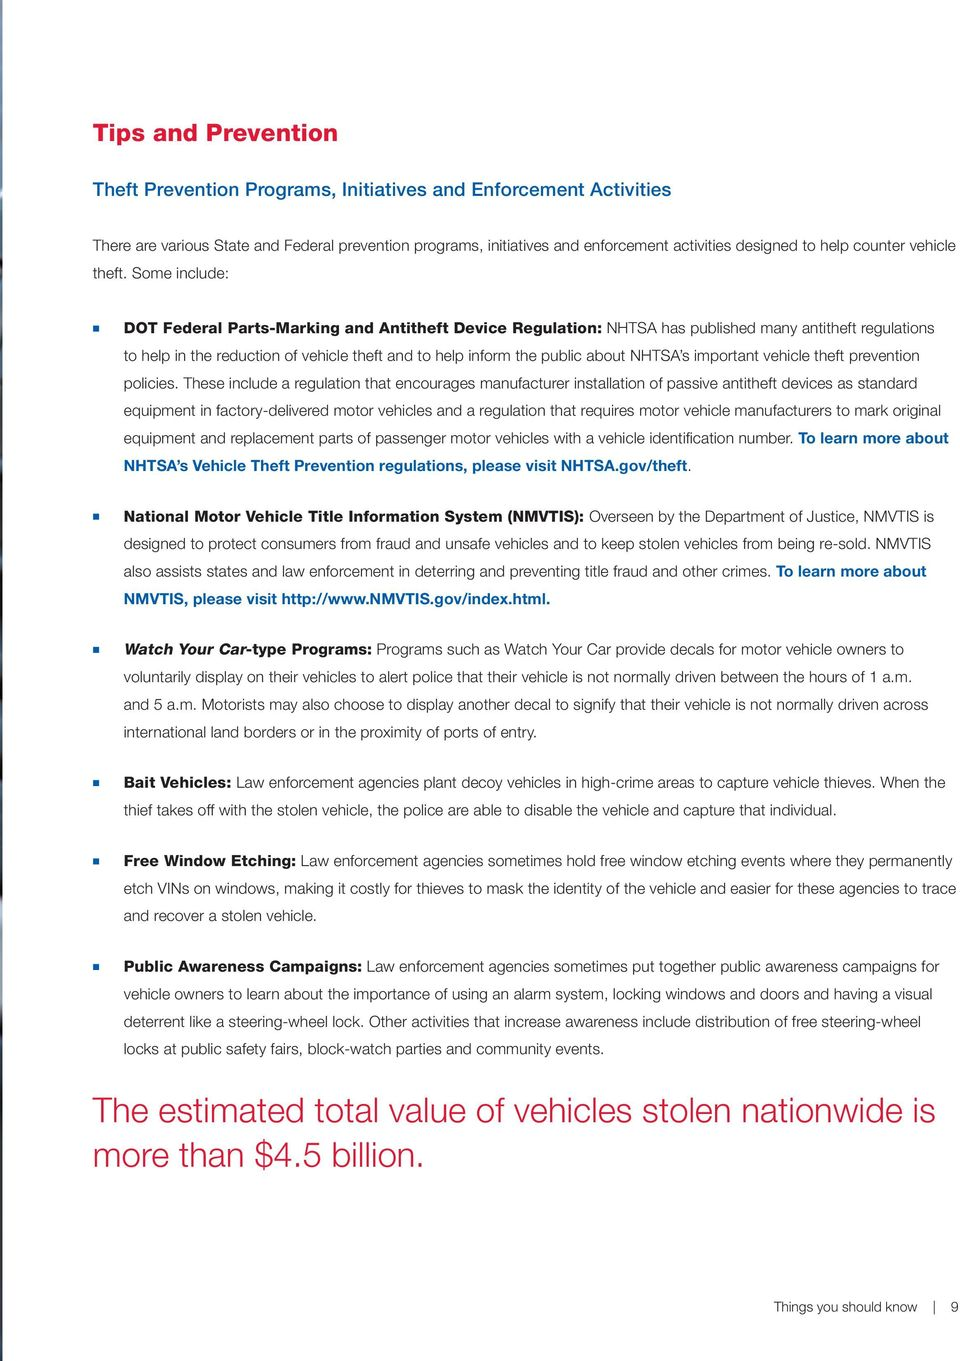 Some include: DOT Federal Parts-Marking and Antitheft Device Regulation: NHTSA has published many antitheft regulations to help in the reduction of vehicle theft and to help inform the public about